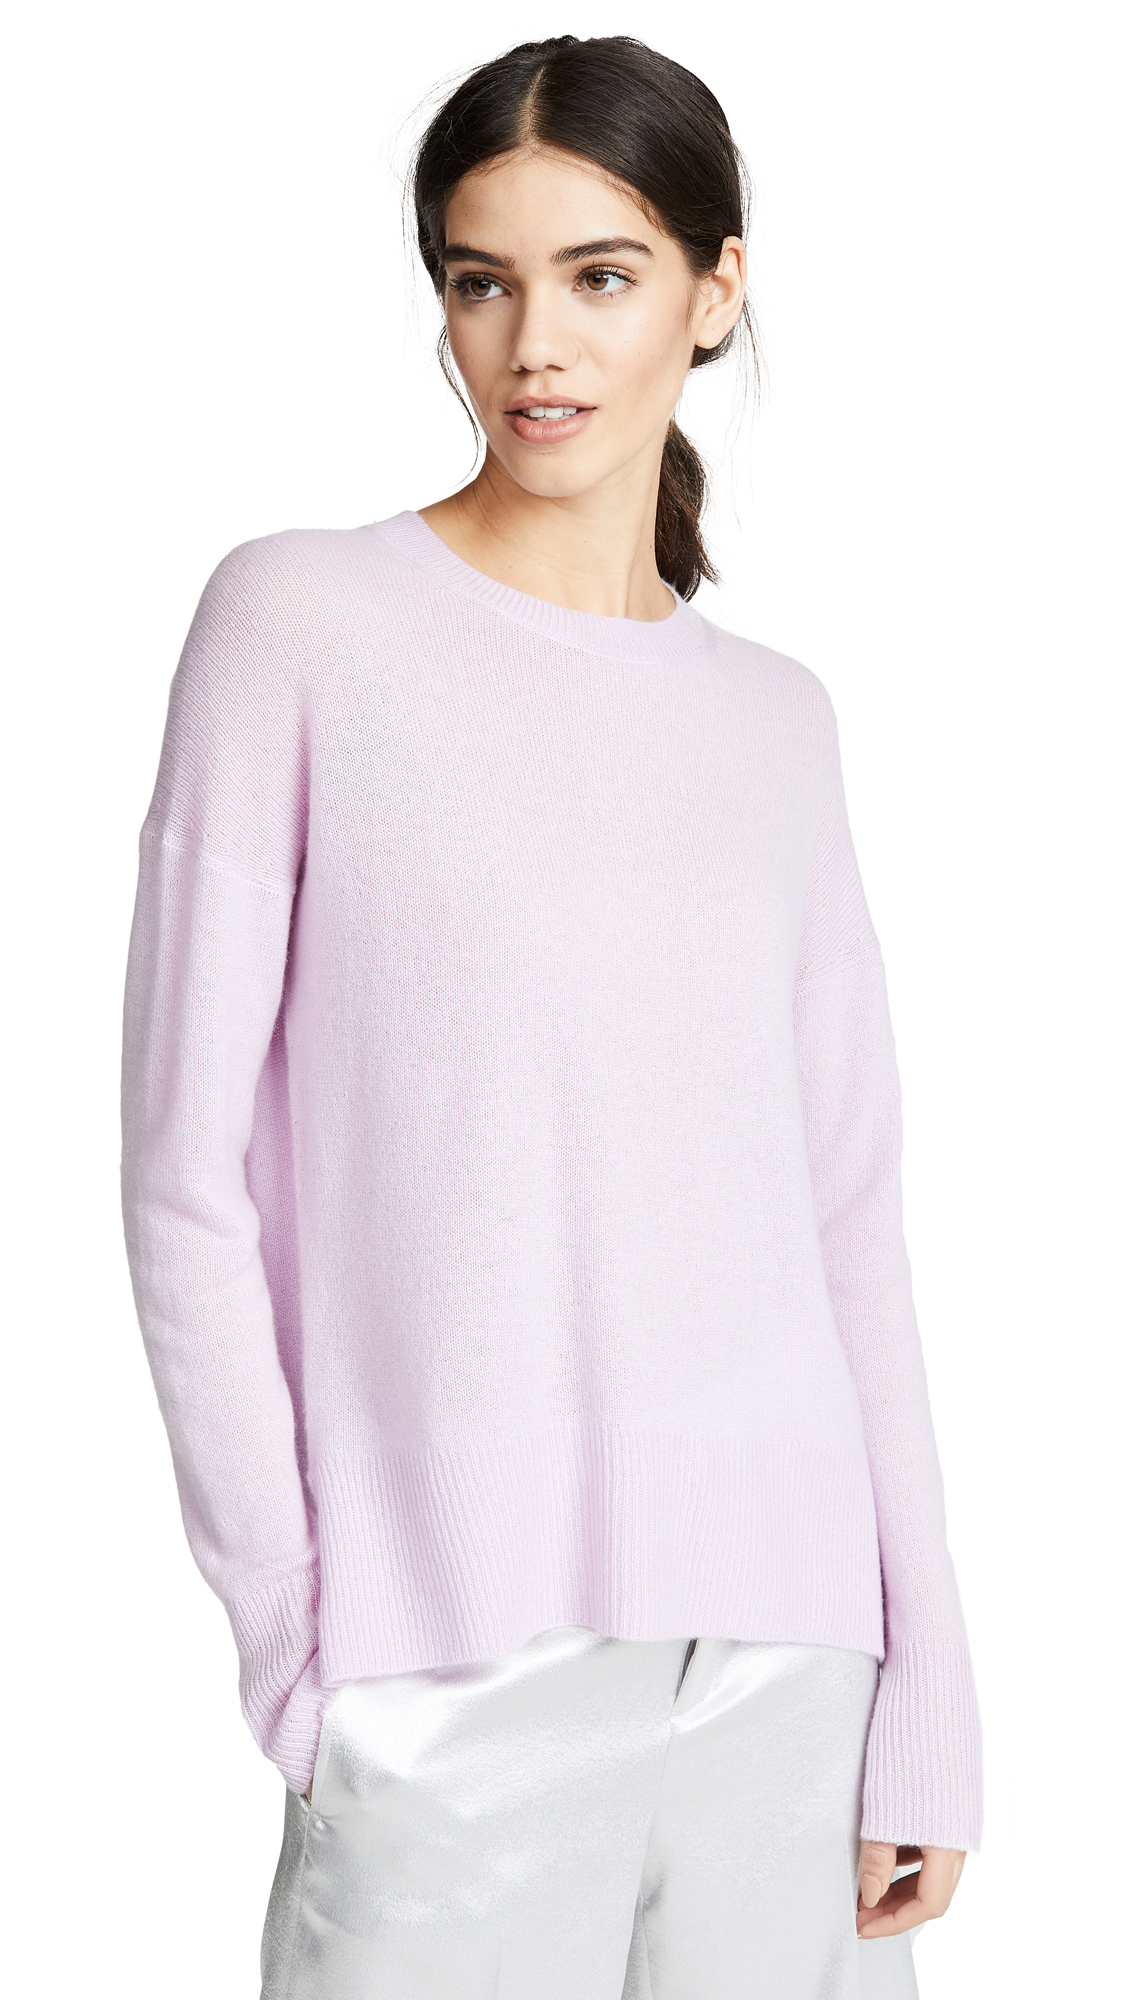 Theory Karenia Cashmere Sweater - Pink Lilac